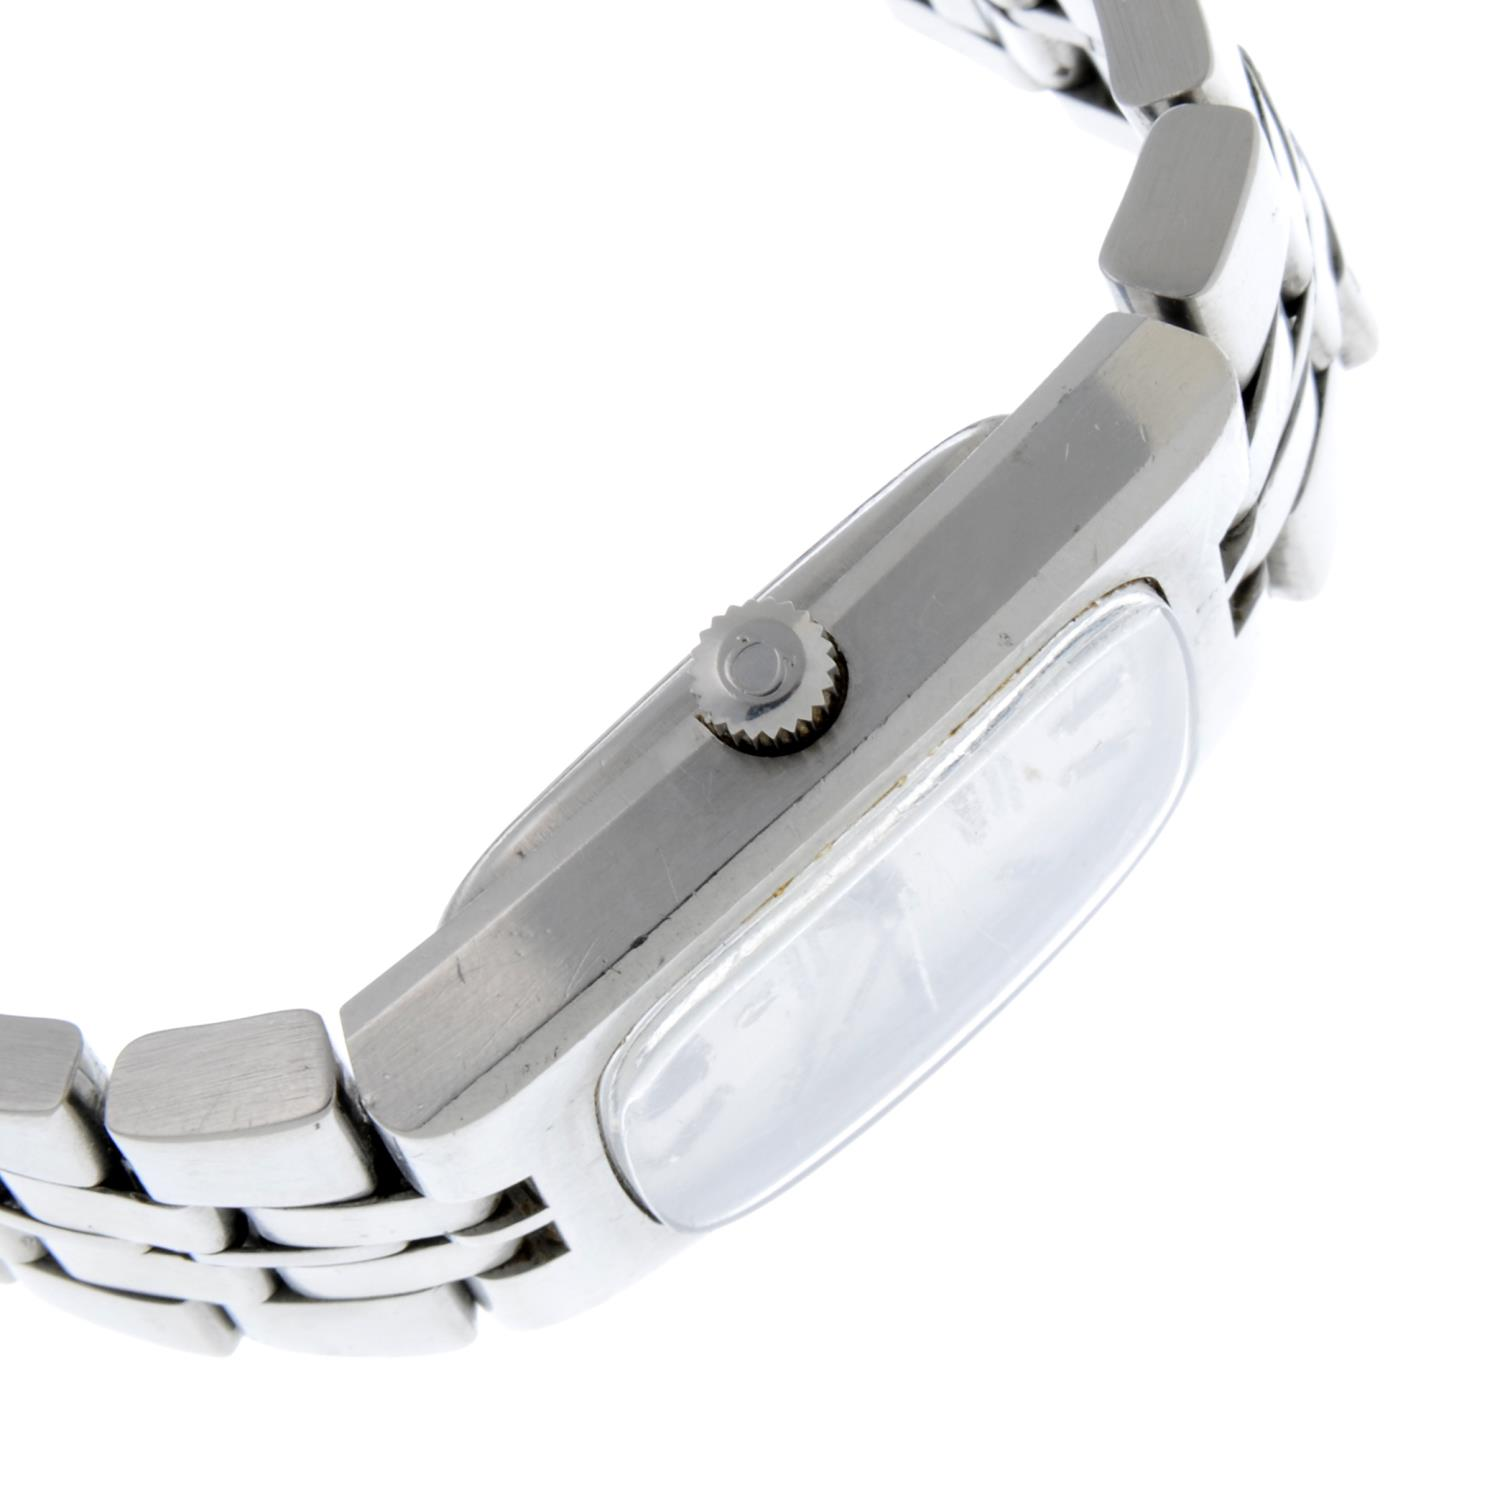 OMEGA - a Constellation bracelet watch. - Image 3 of 4